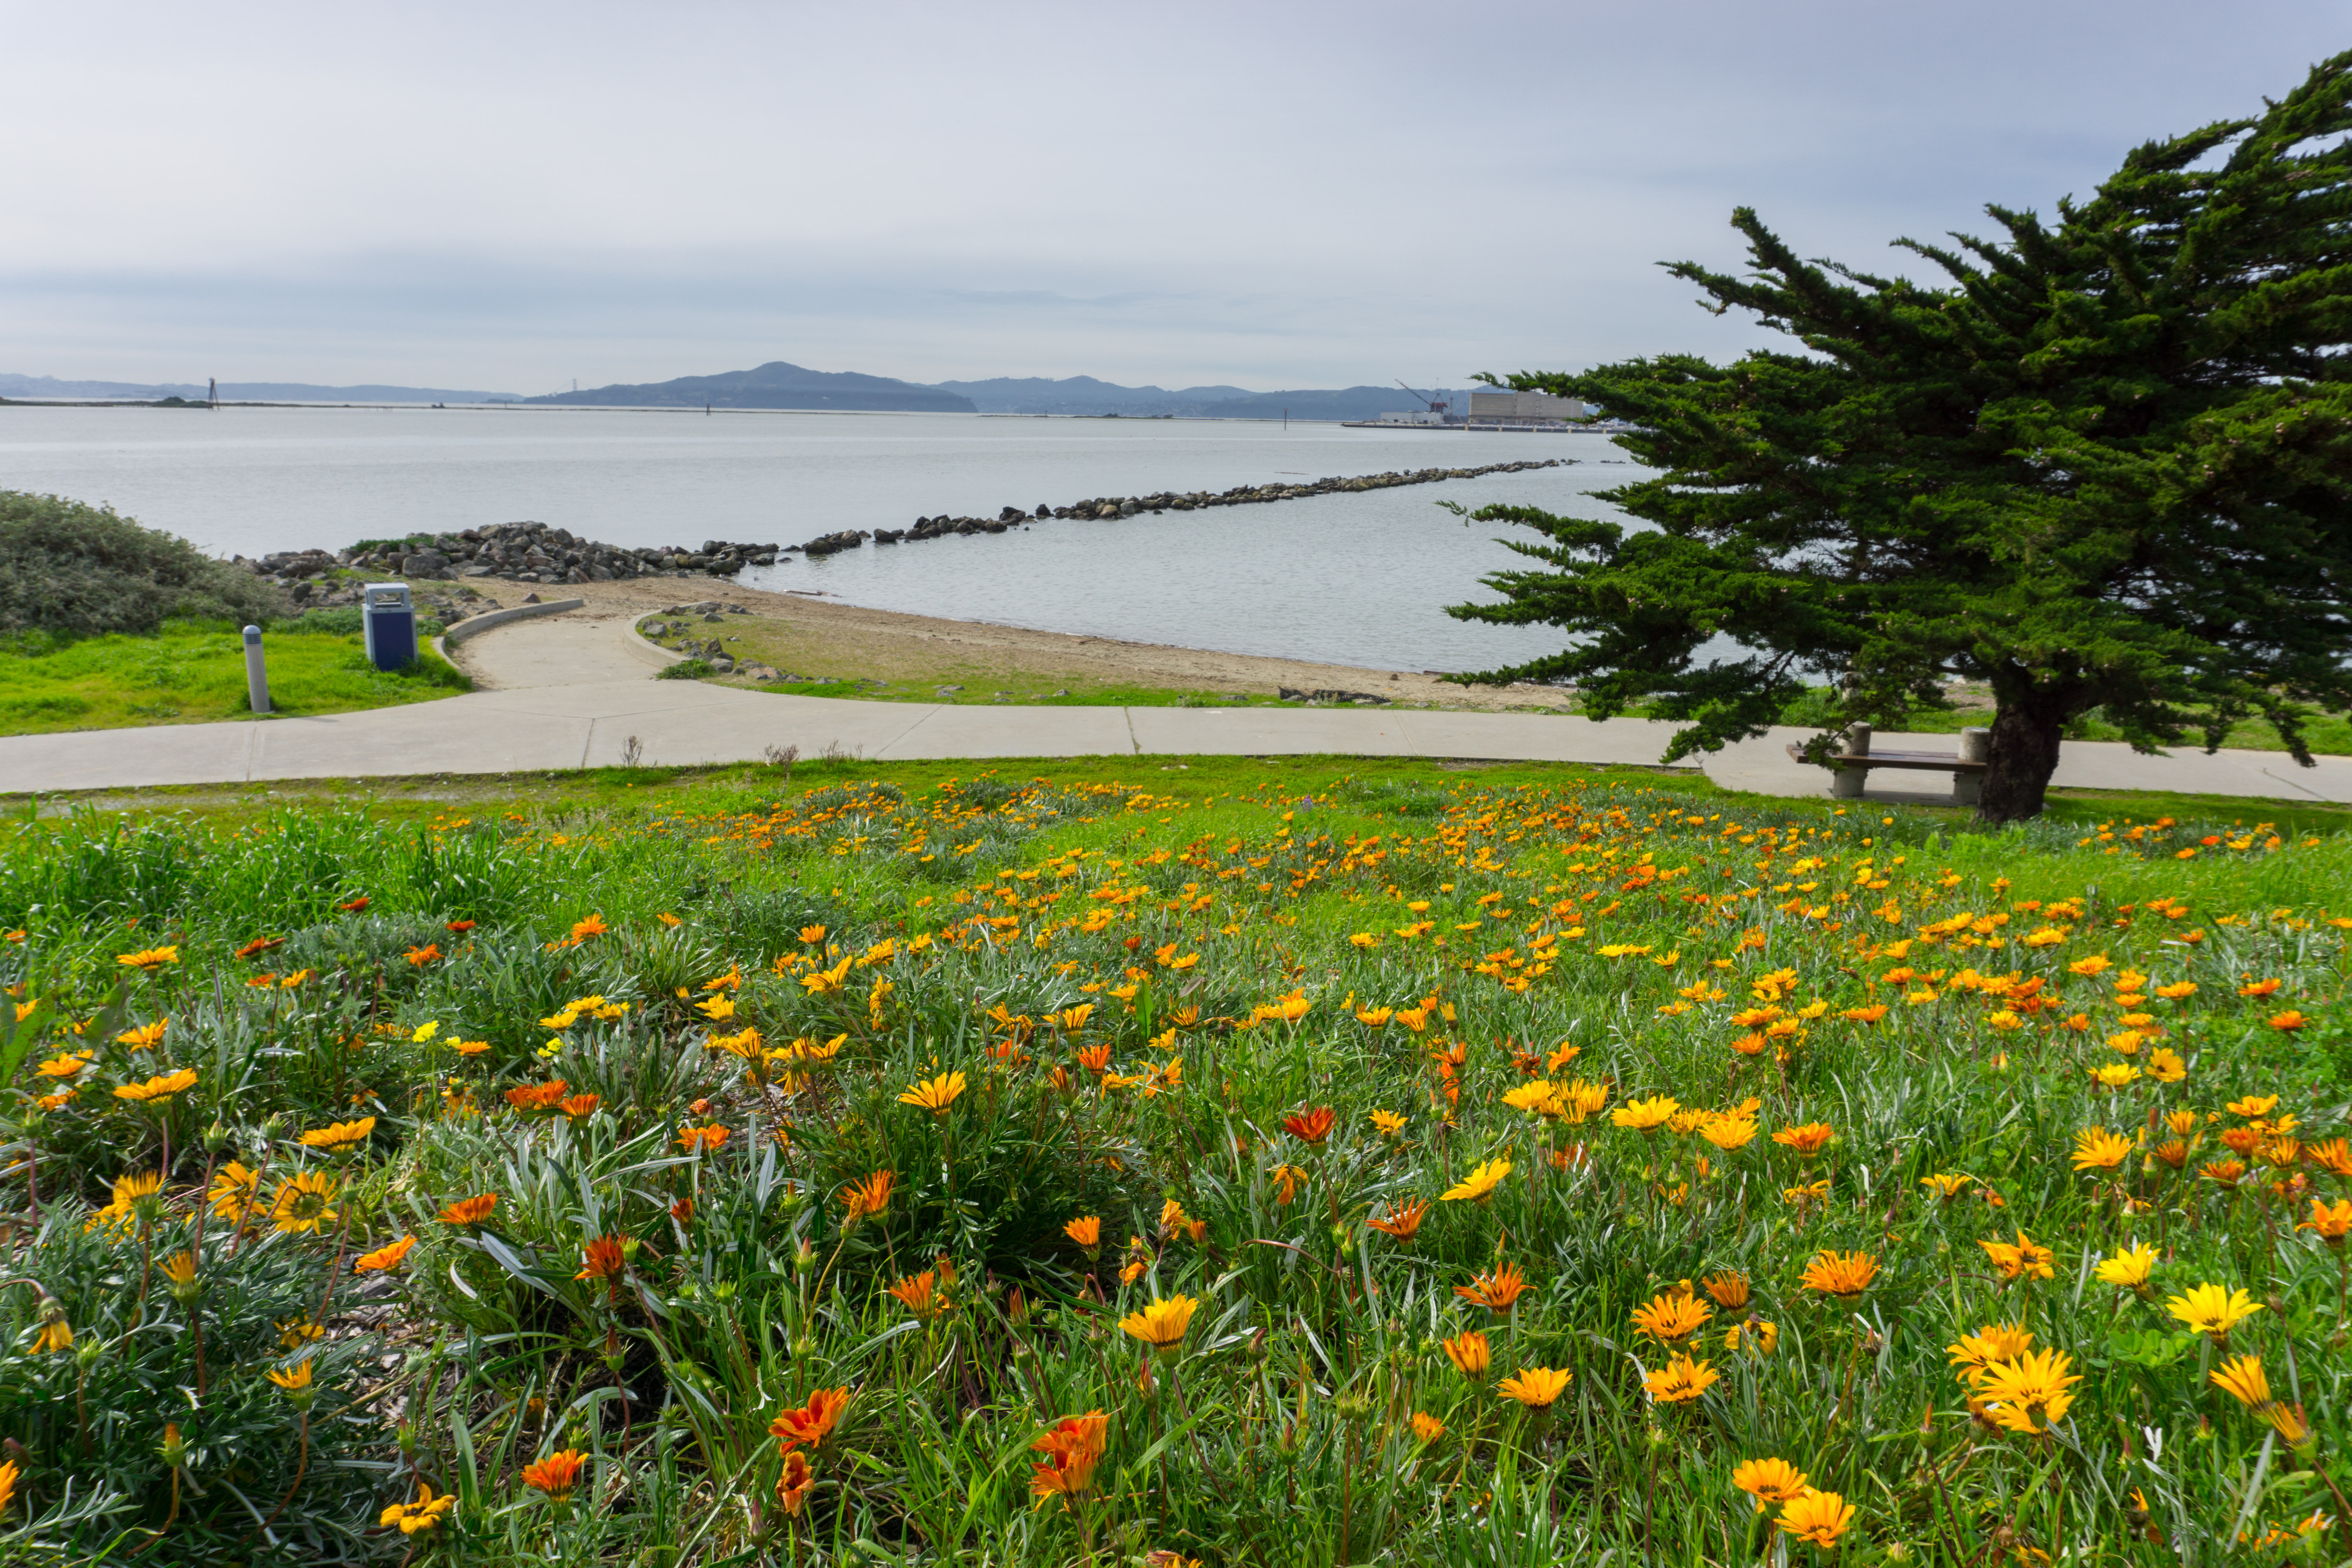 Orange flowers in bloom, paved path, bay in distance